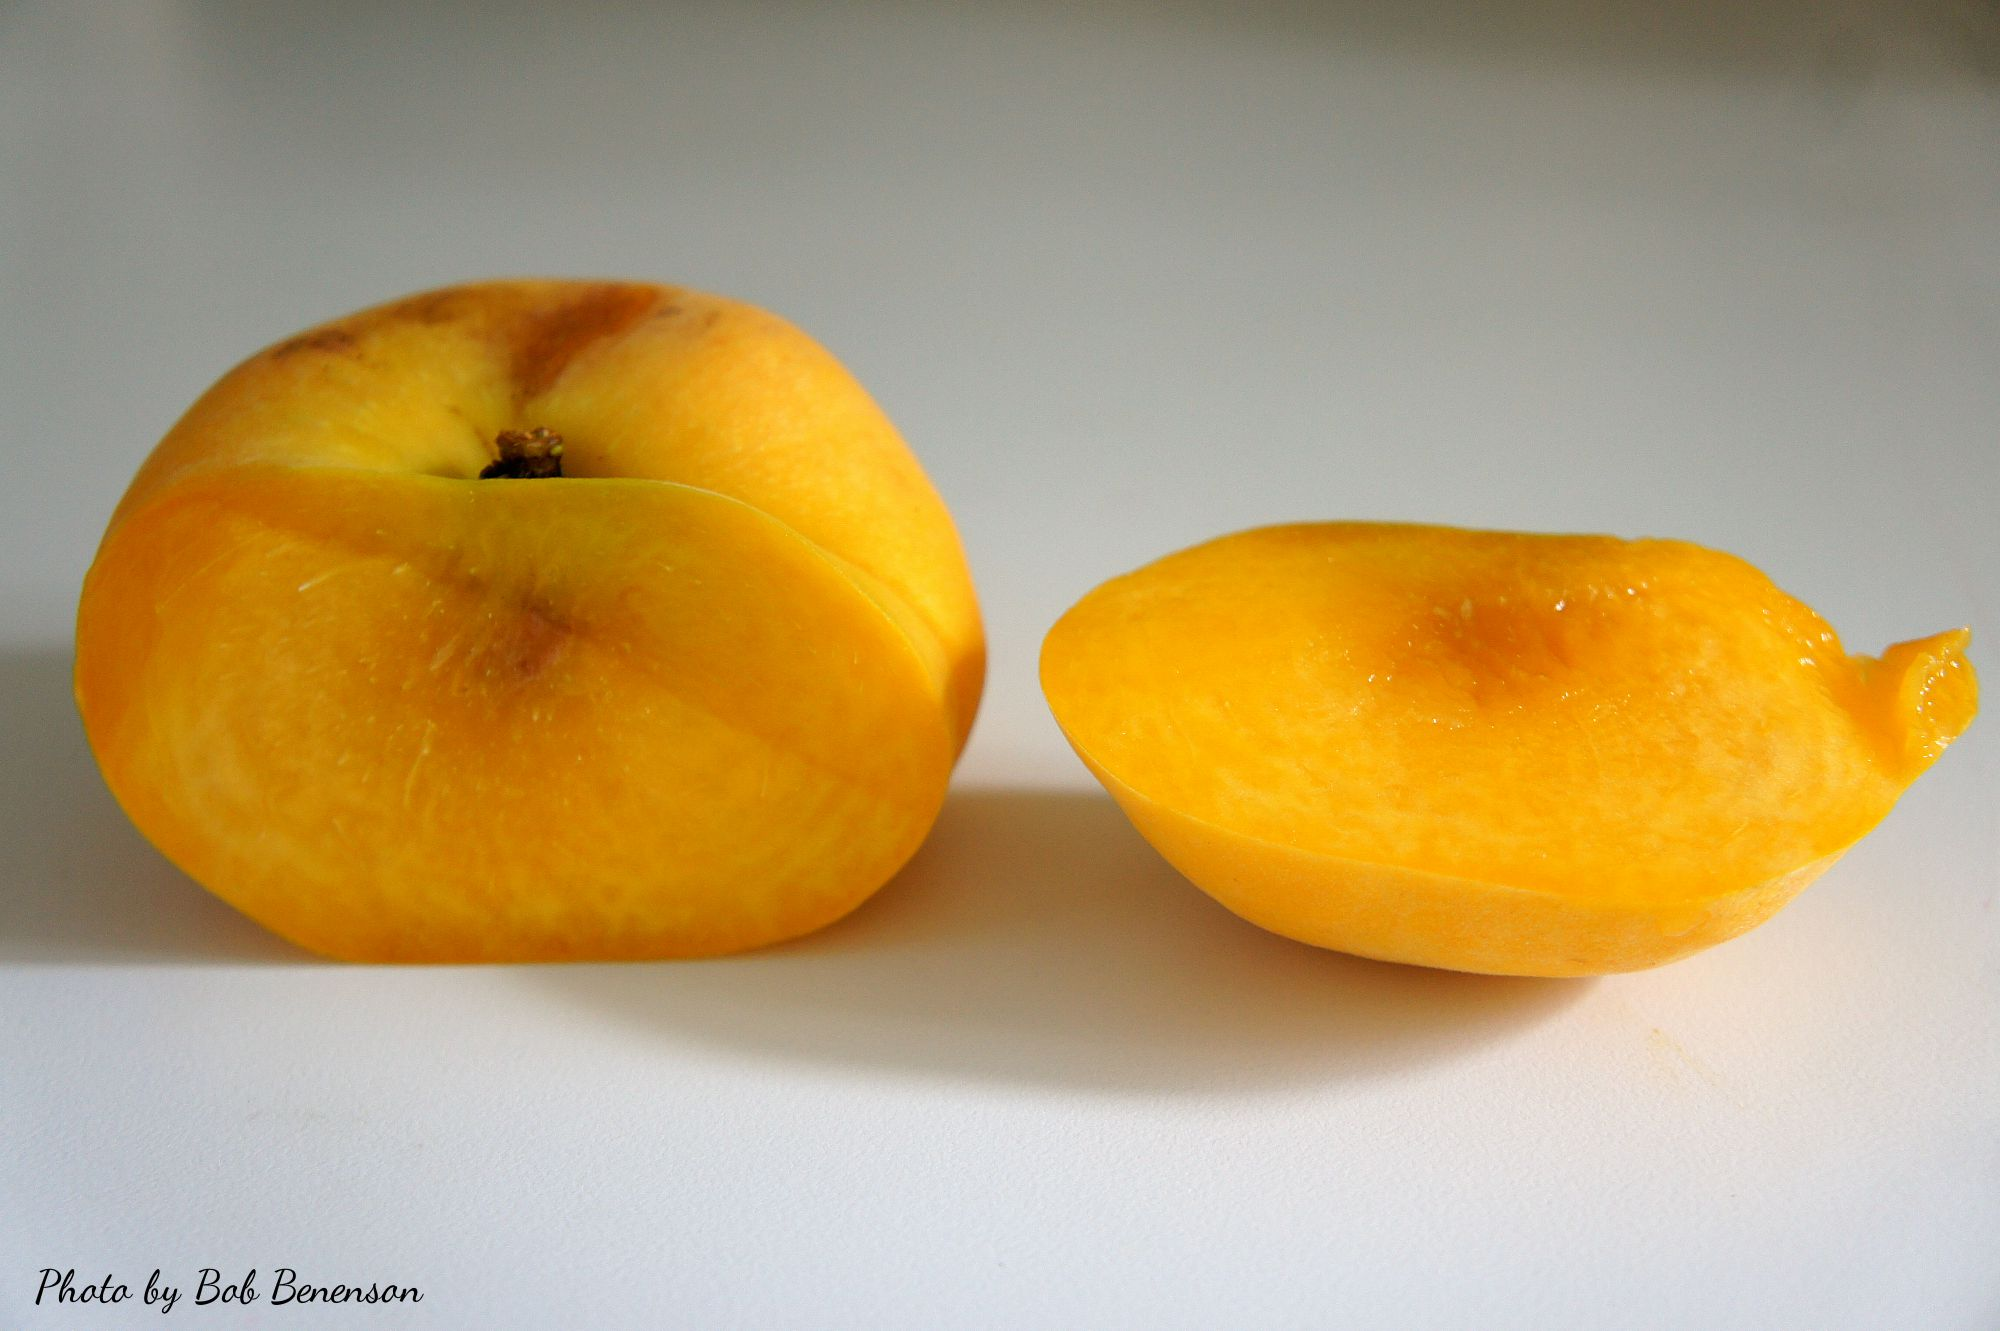 Doughnut peach, also known as a Saturn peach